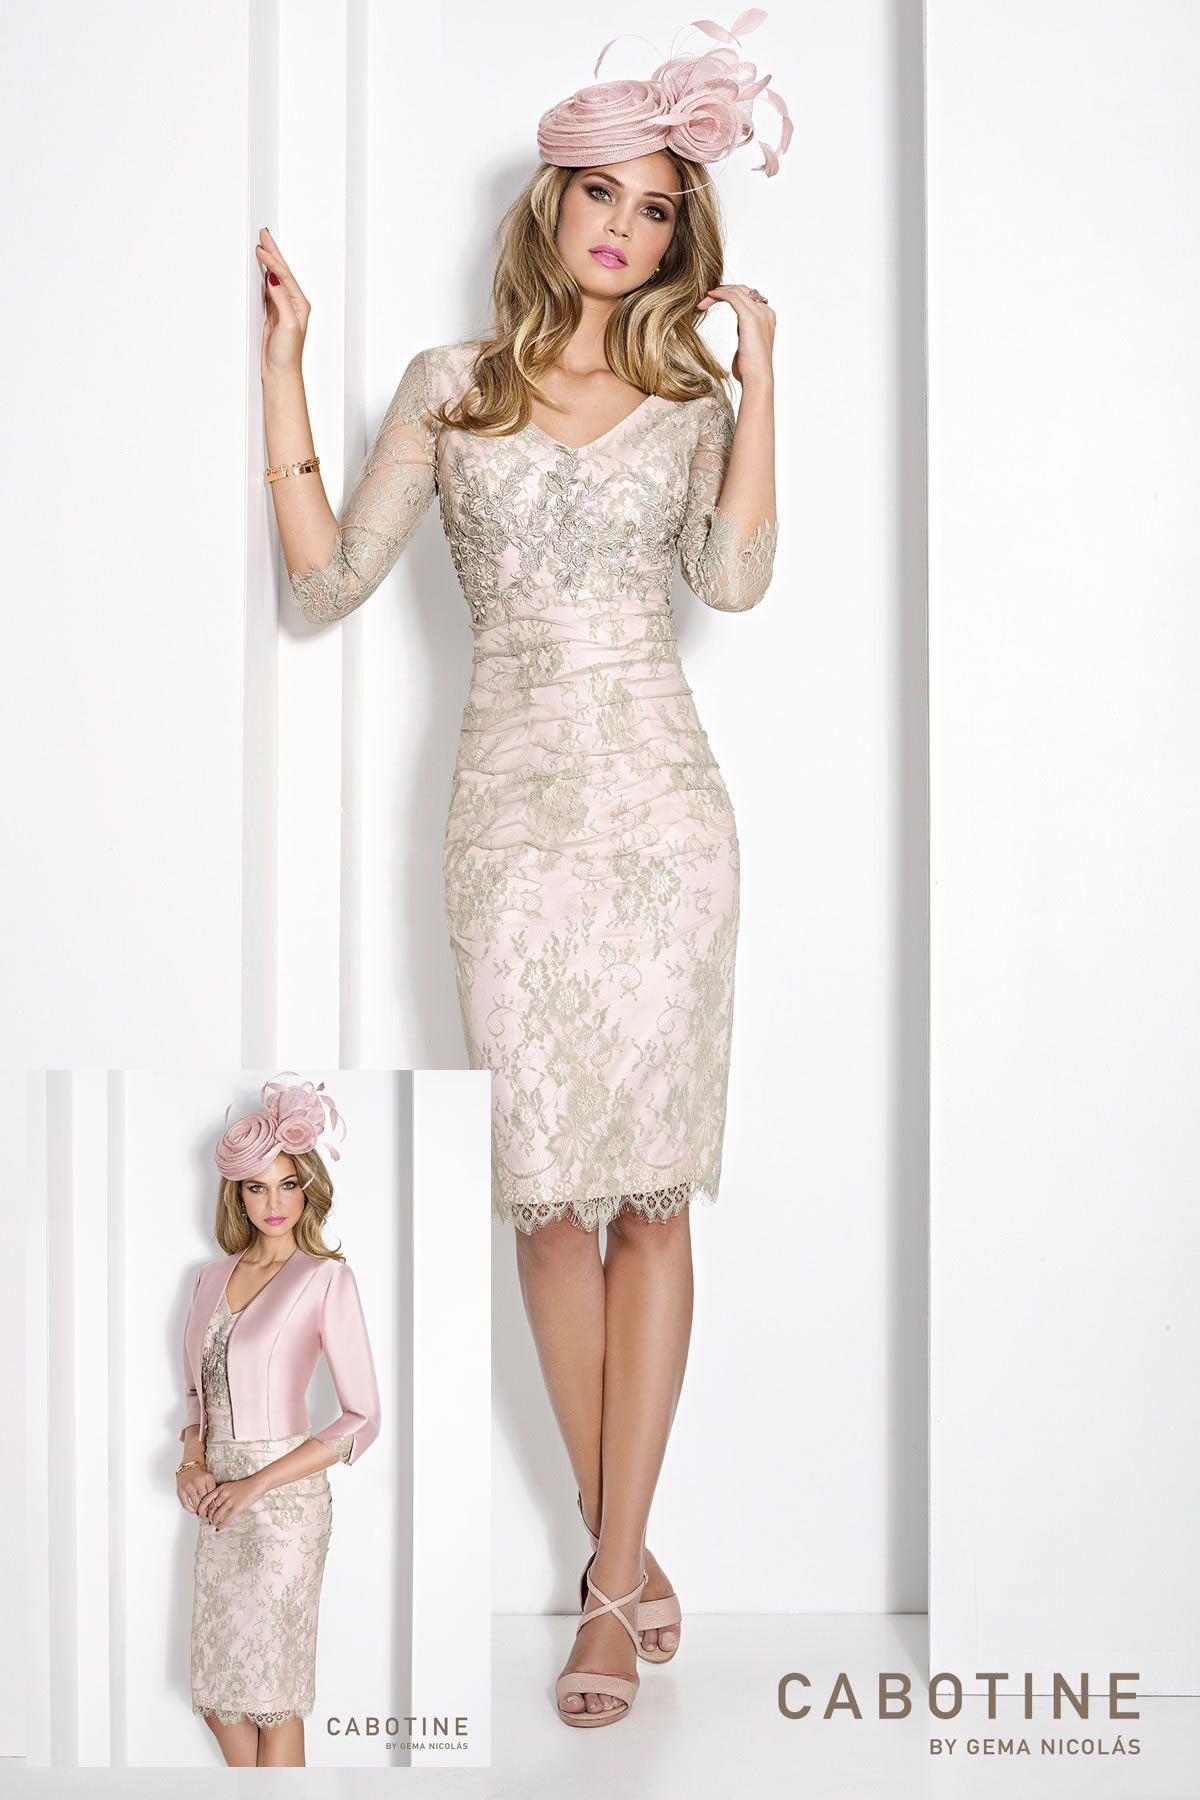 Cabotine mother of the bride and groom outfit 5007259 | Mixed ...